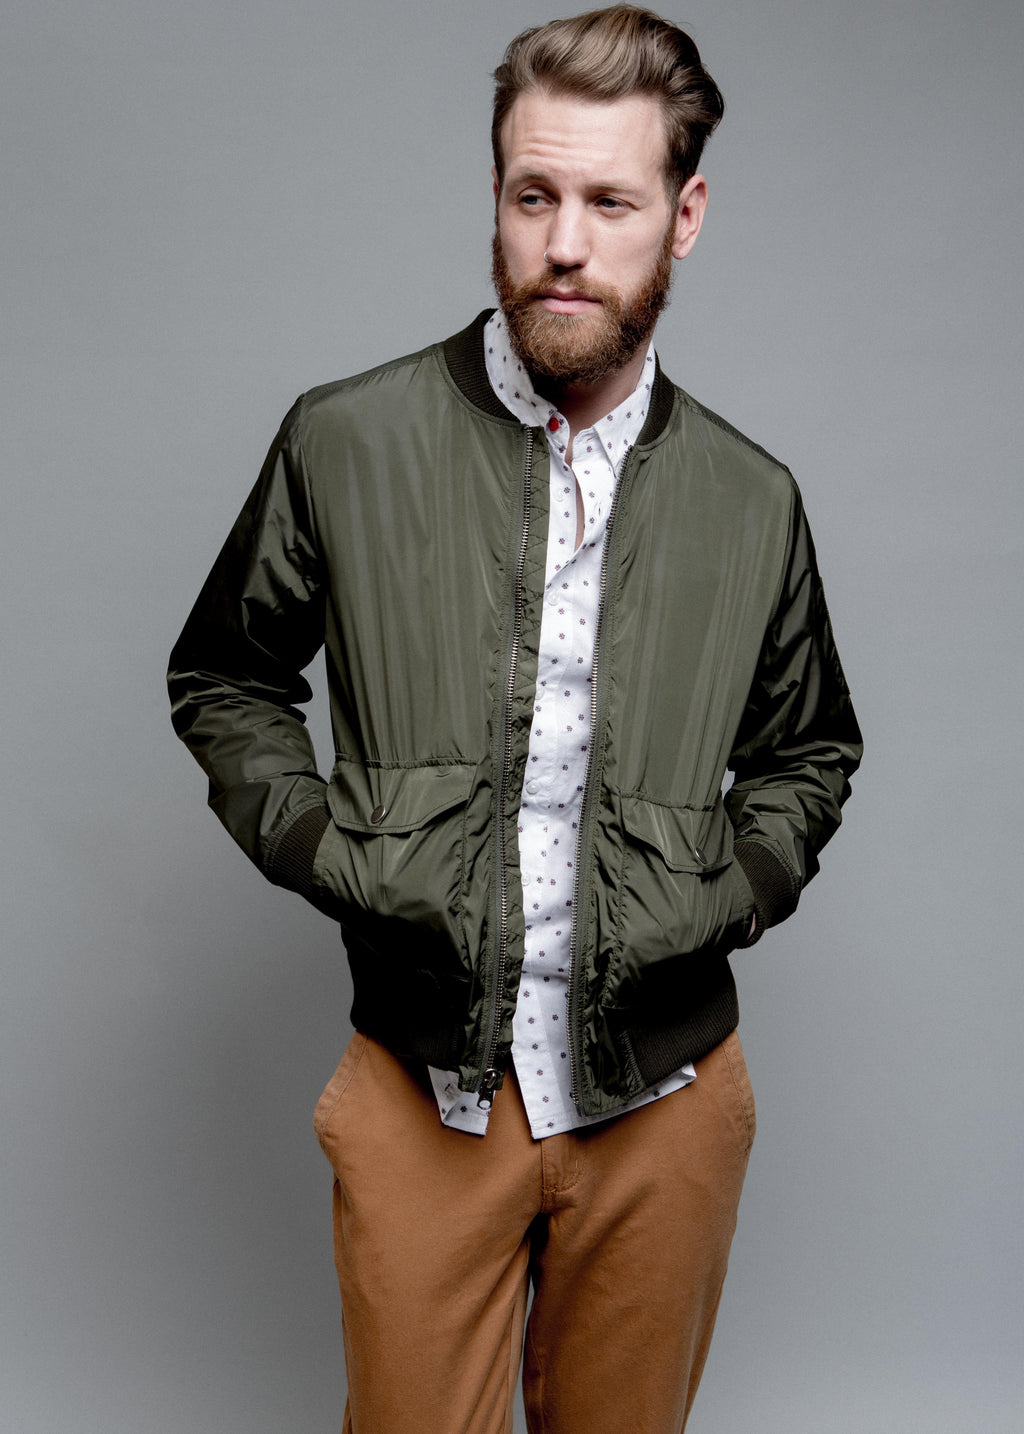 NYLON BOMBER JACKET IN GREEN ON MALE MODEL. OPEN FRONT HANDS IN POCKETS